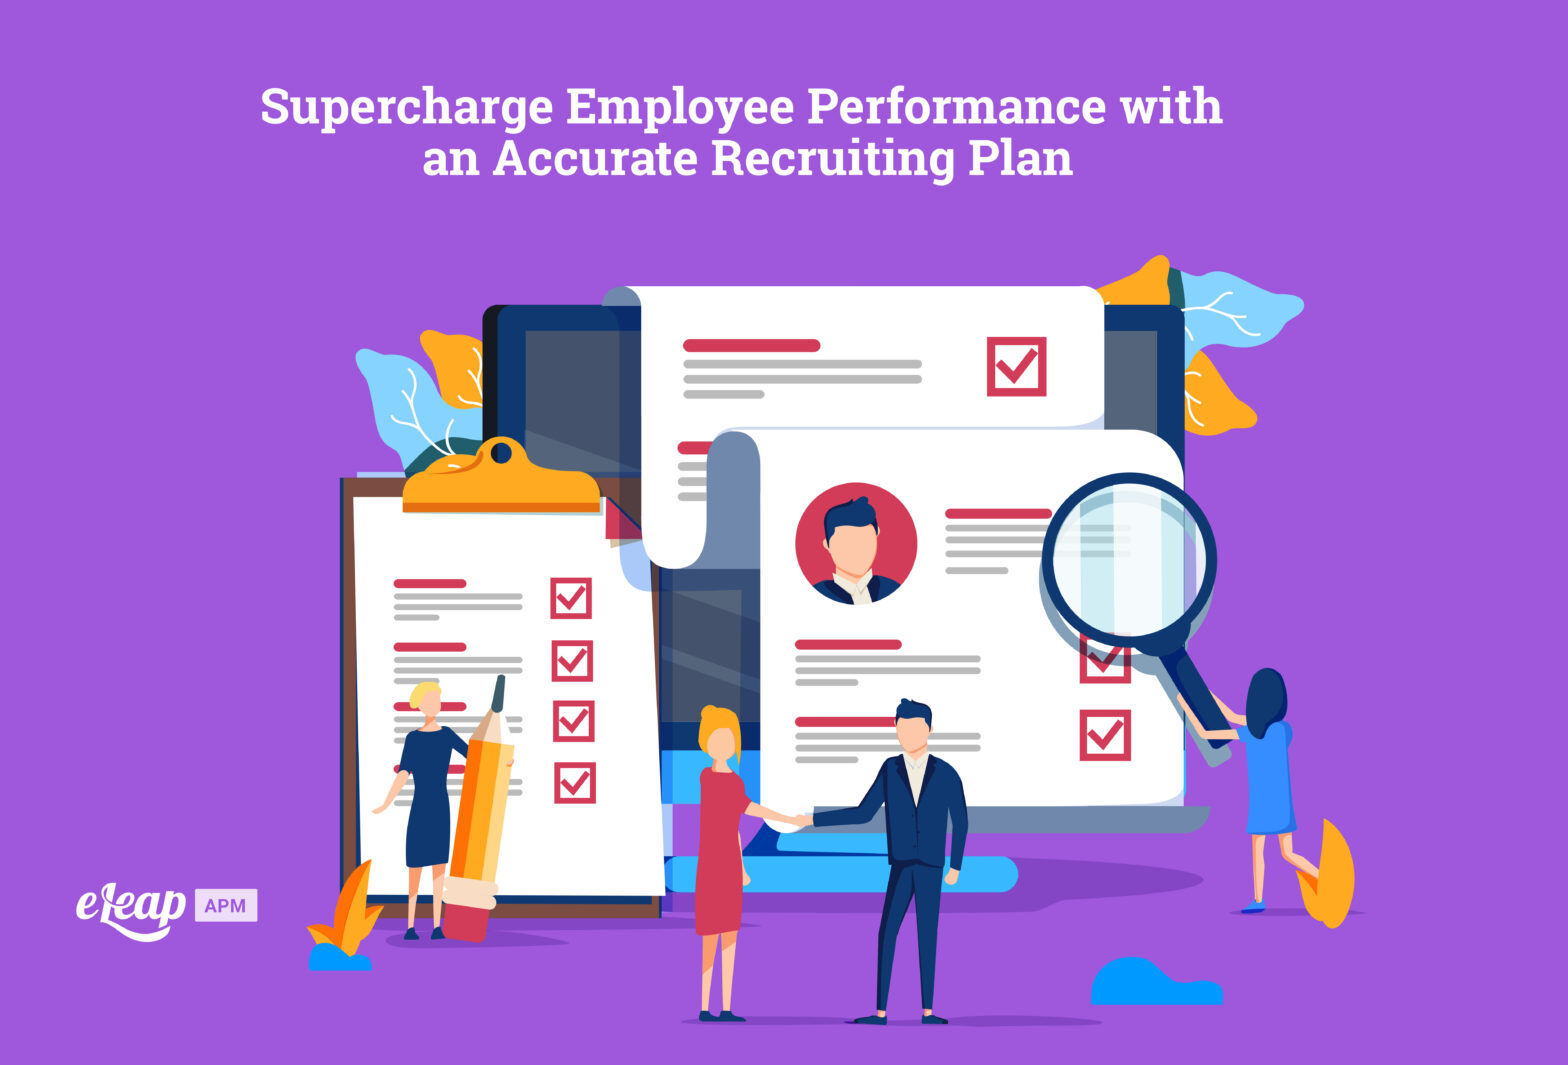 Supercharge Employee Performance with an Accurate Recruiting Plan